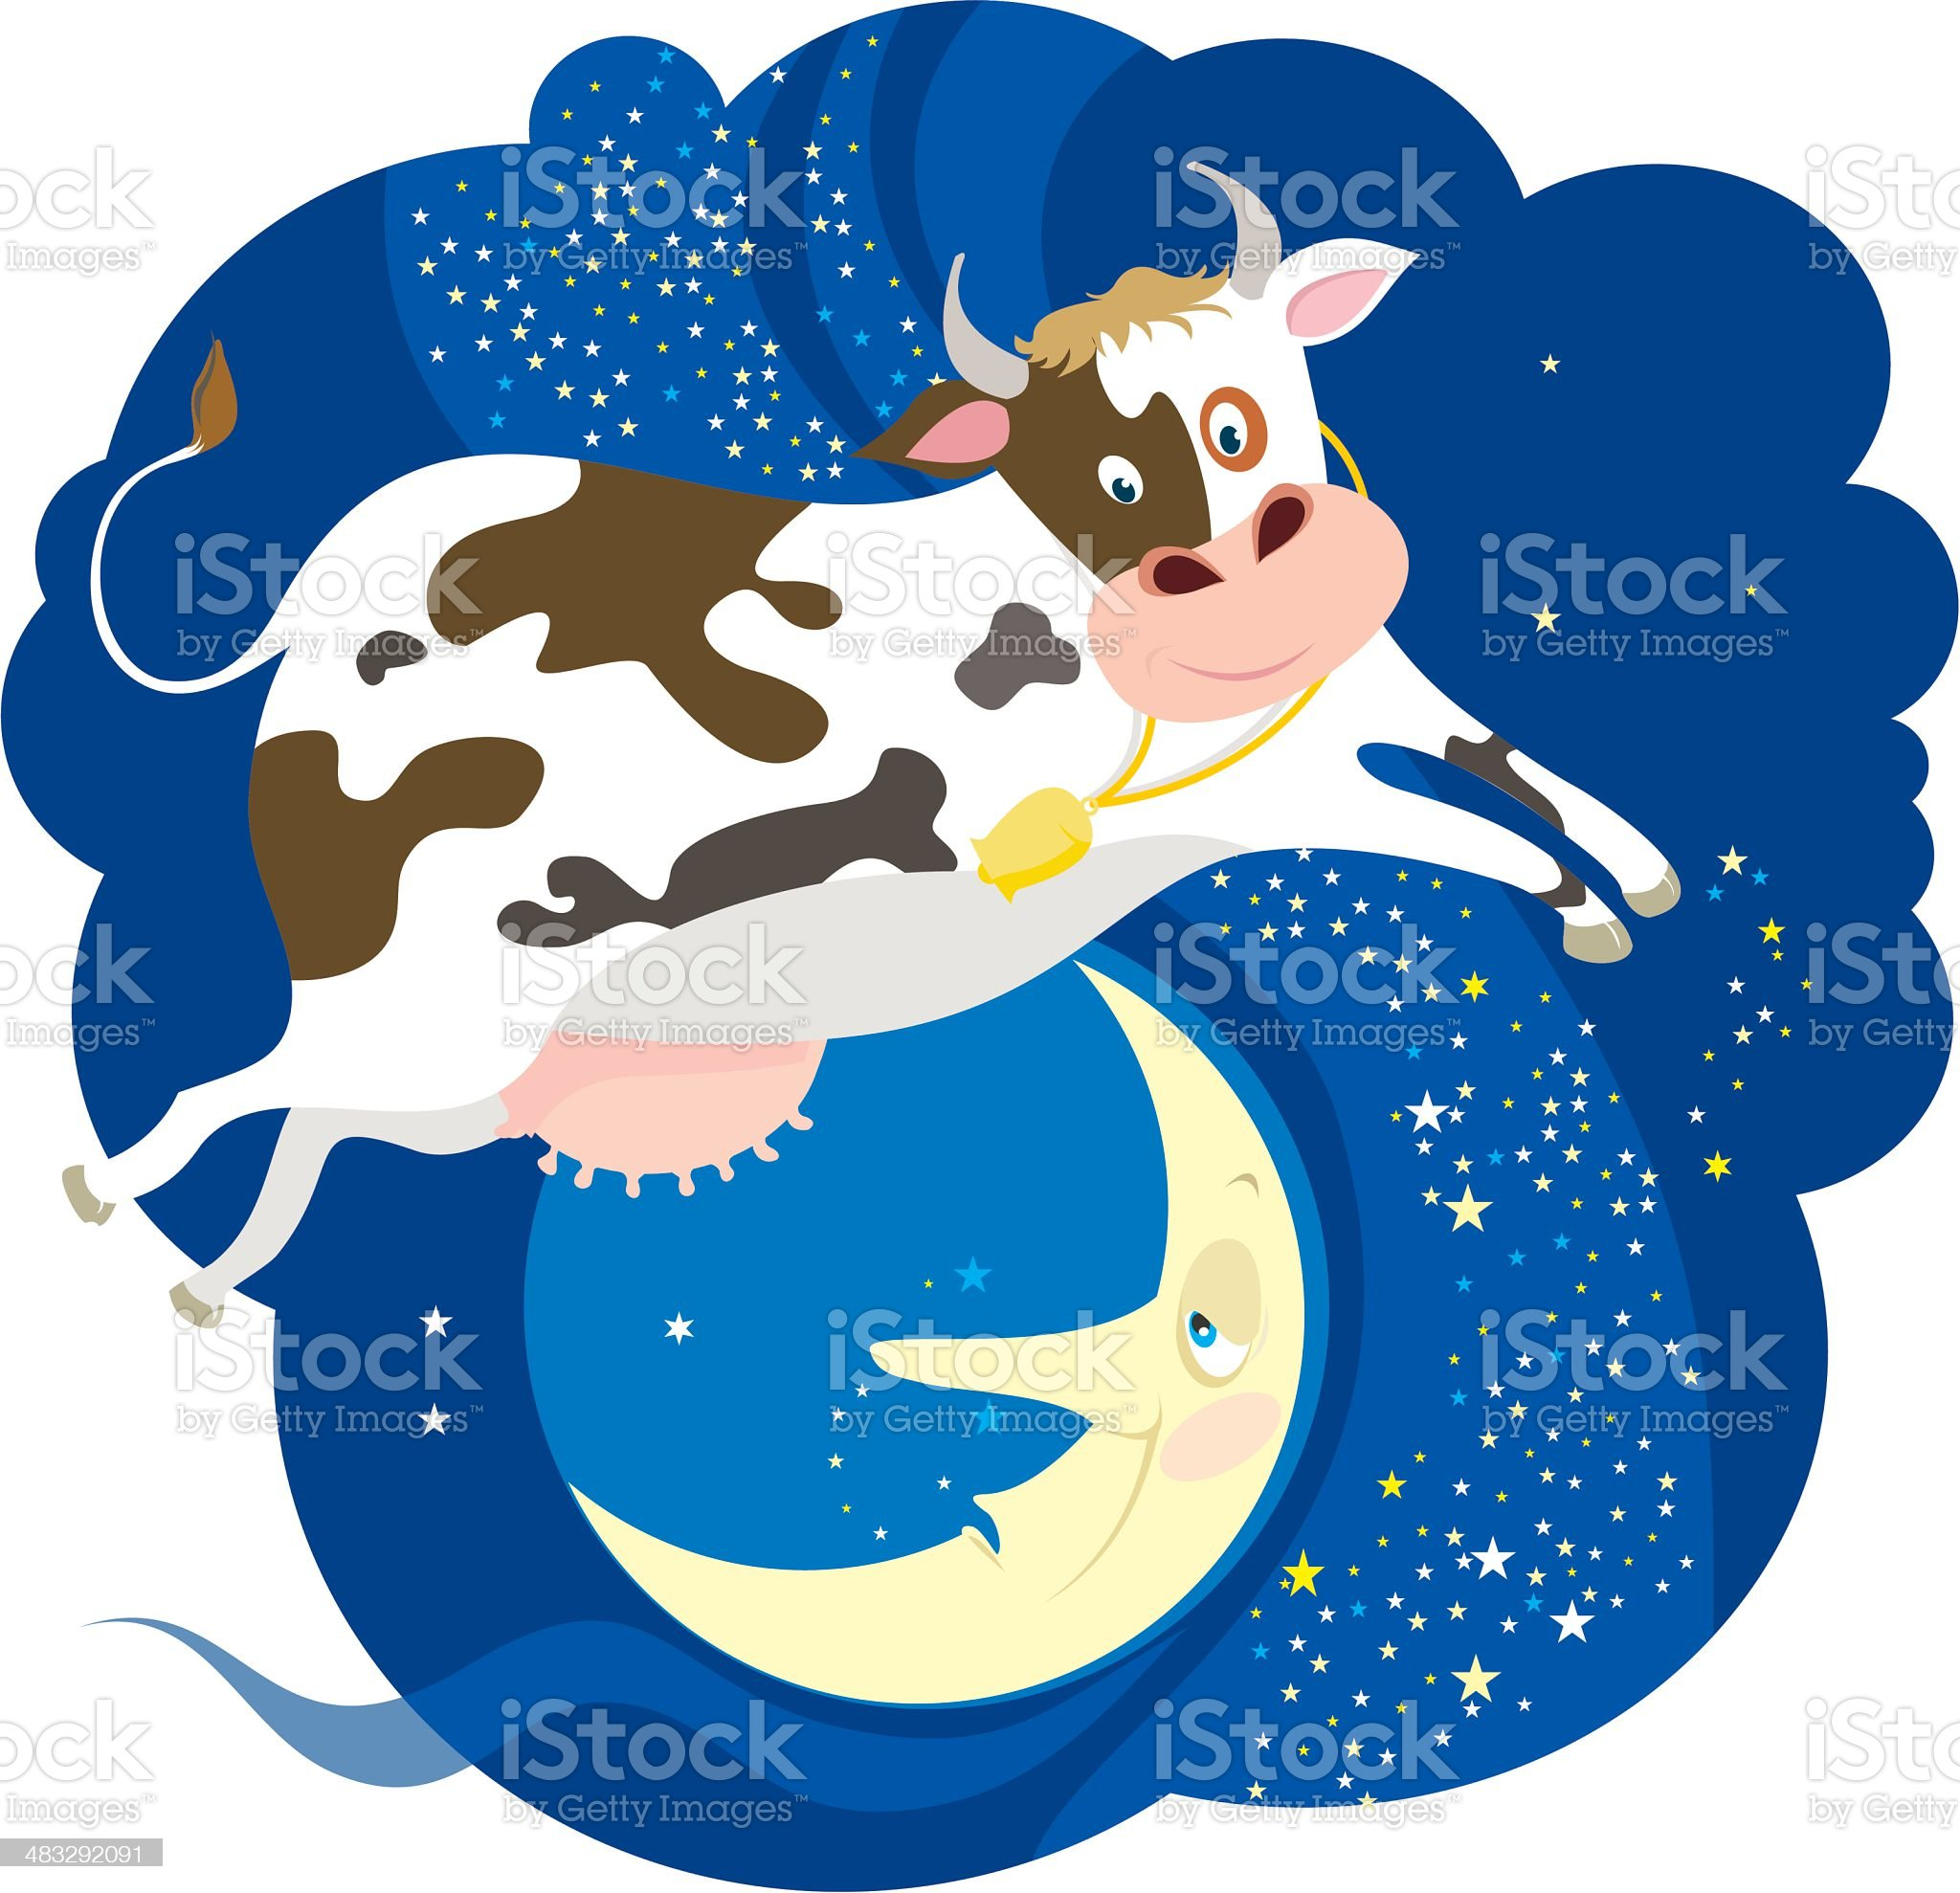 The Cow jumped over  Moon royalty-free stock vector art